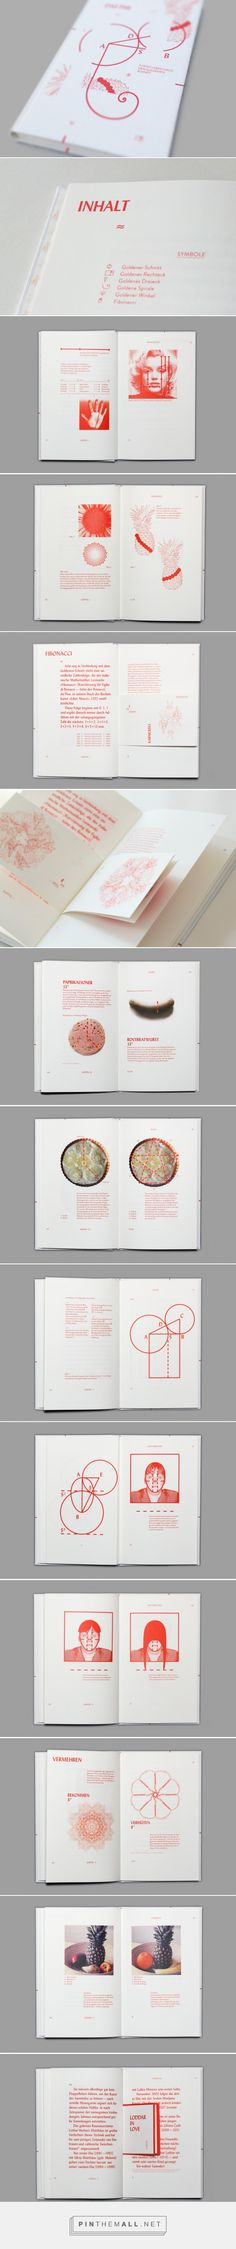 The Phi - For a Life After the Golden Ratio - Pin Coffee Page Layout Design, Web Design, Book Layout, Print Design, Editorial Design, Editorial Layout, Brochure Layout, Brochure Design, Branding Design